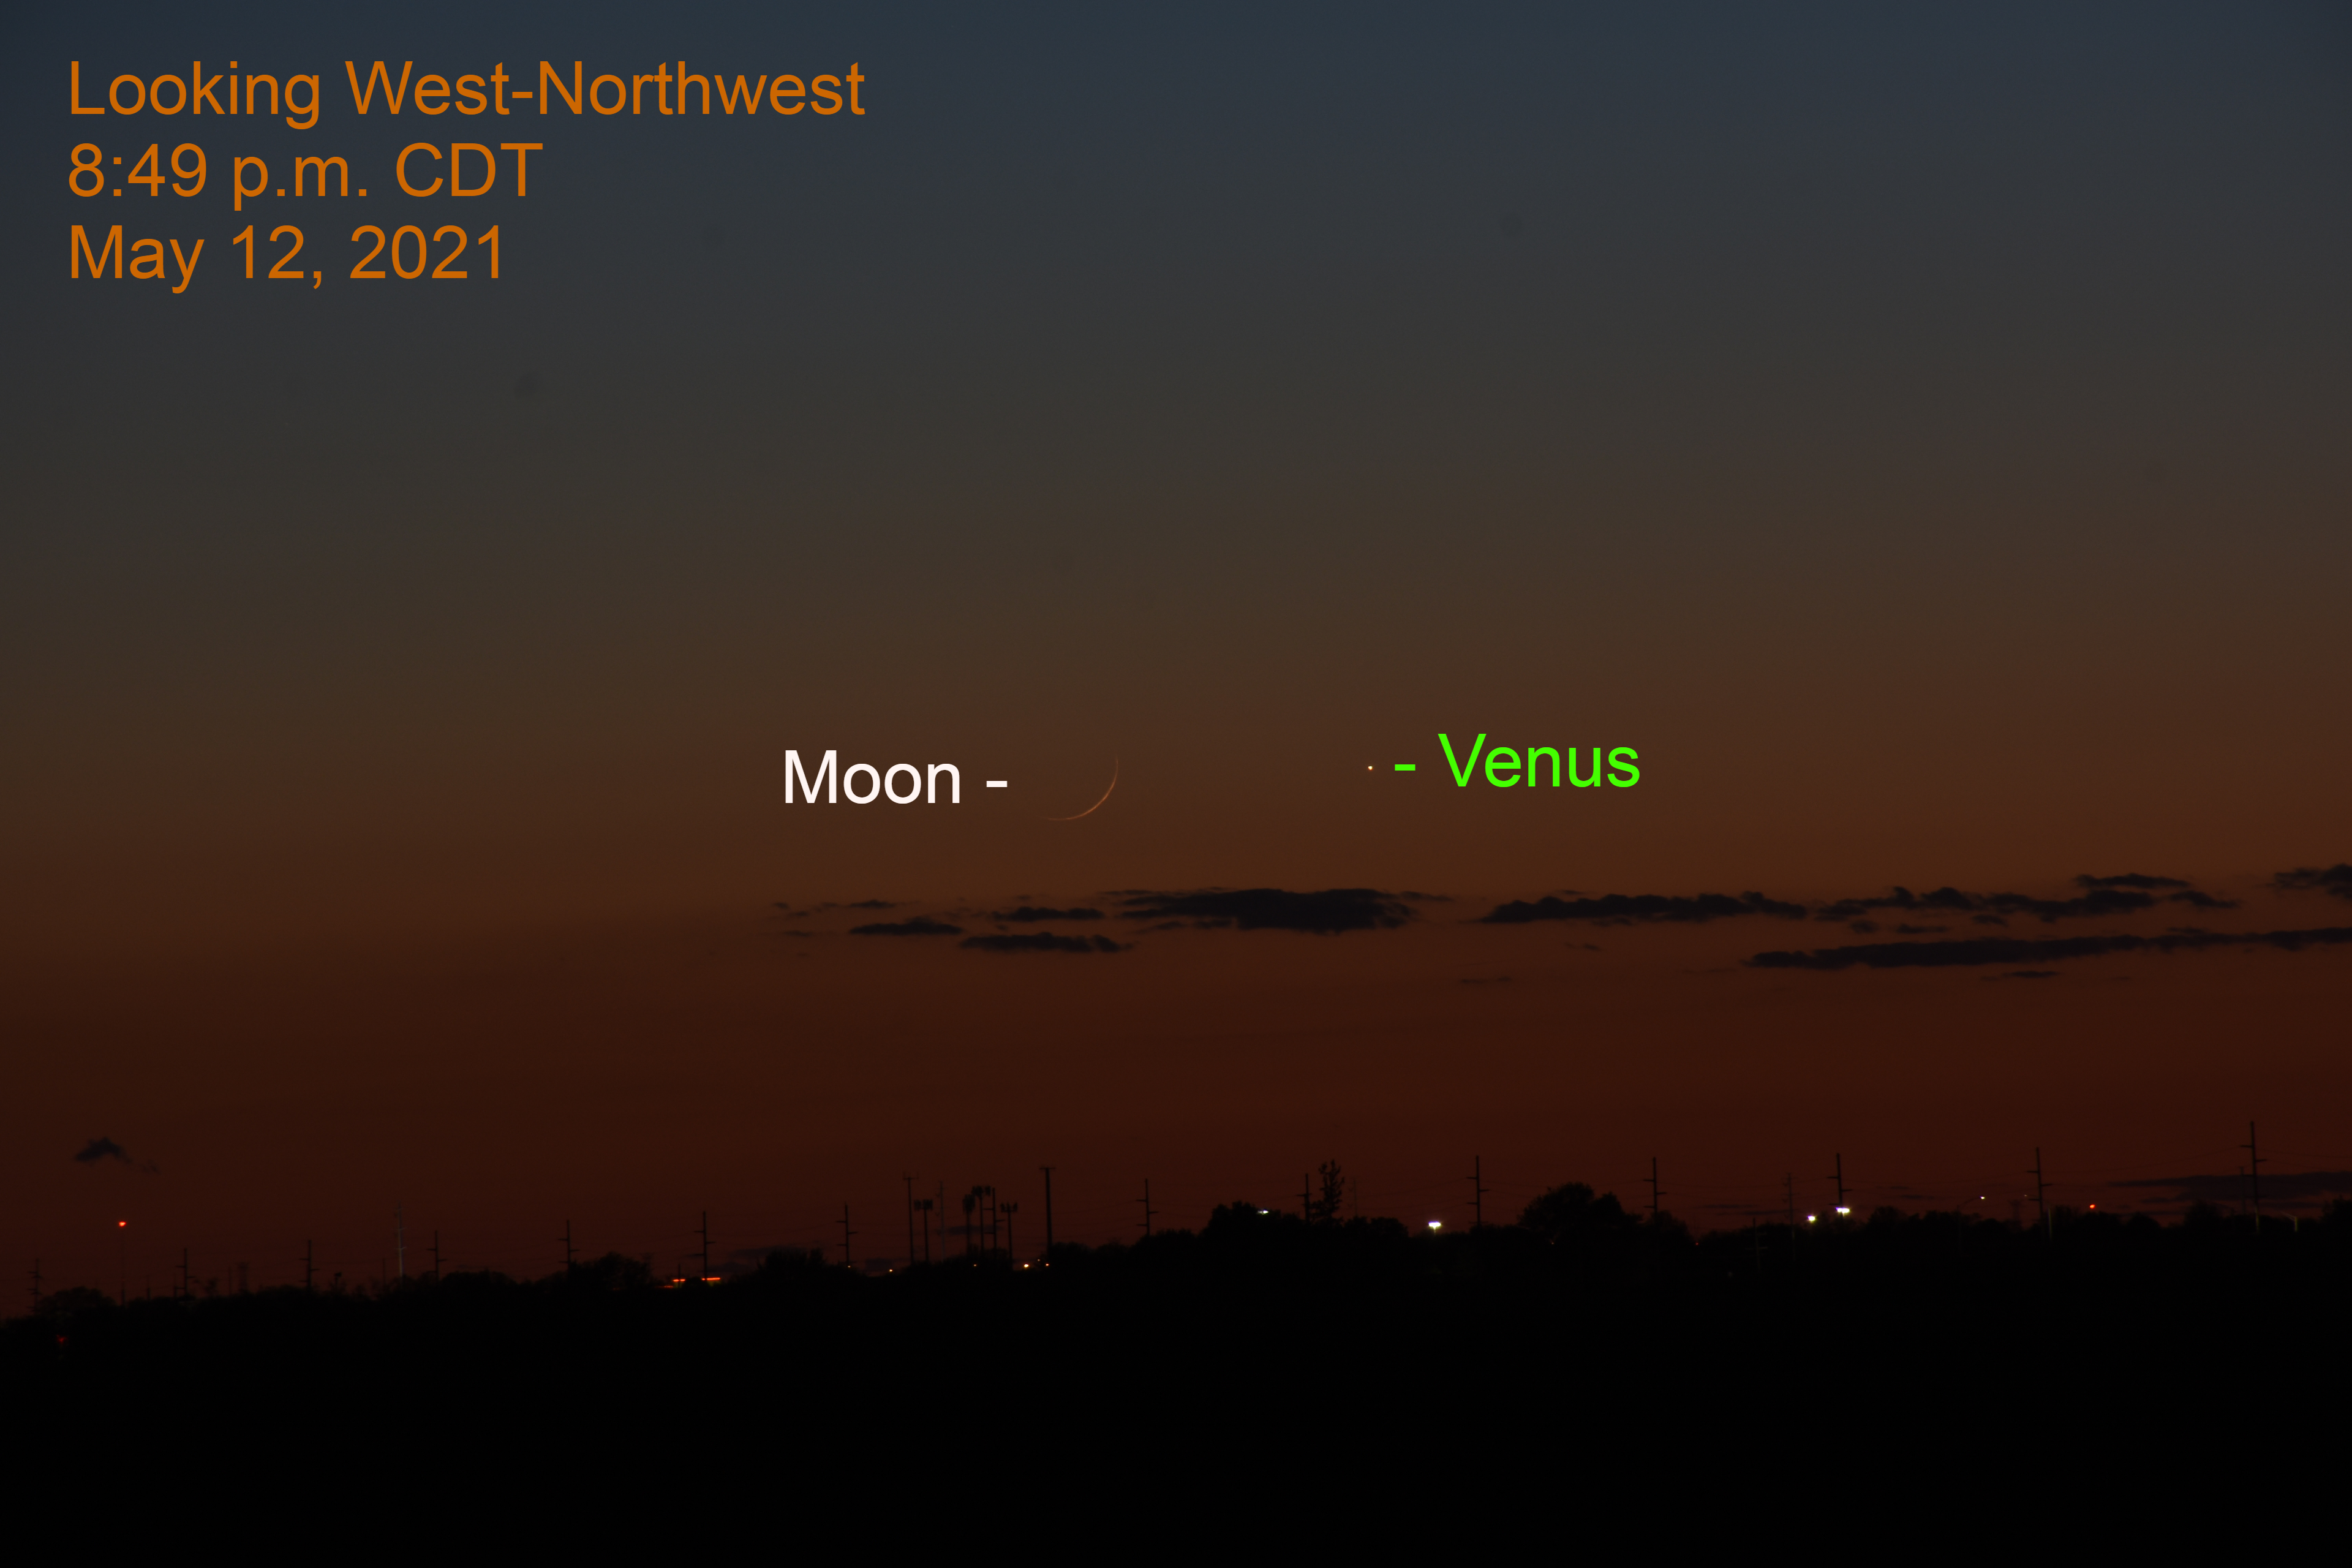 2021, May 12: The moon is 1.2 degrees to the left of brilliant Venus.